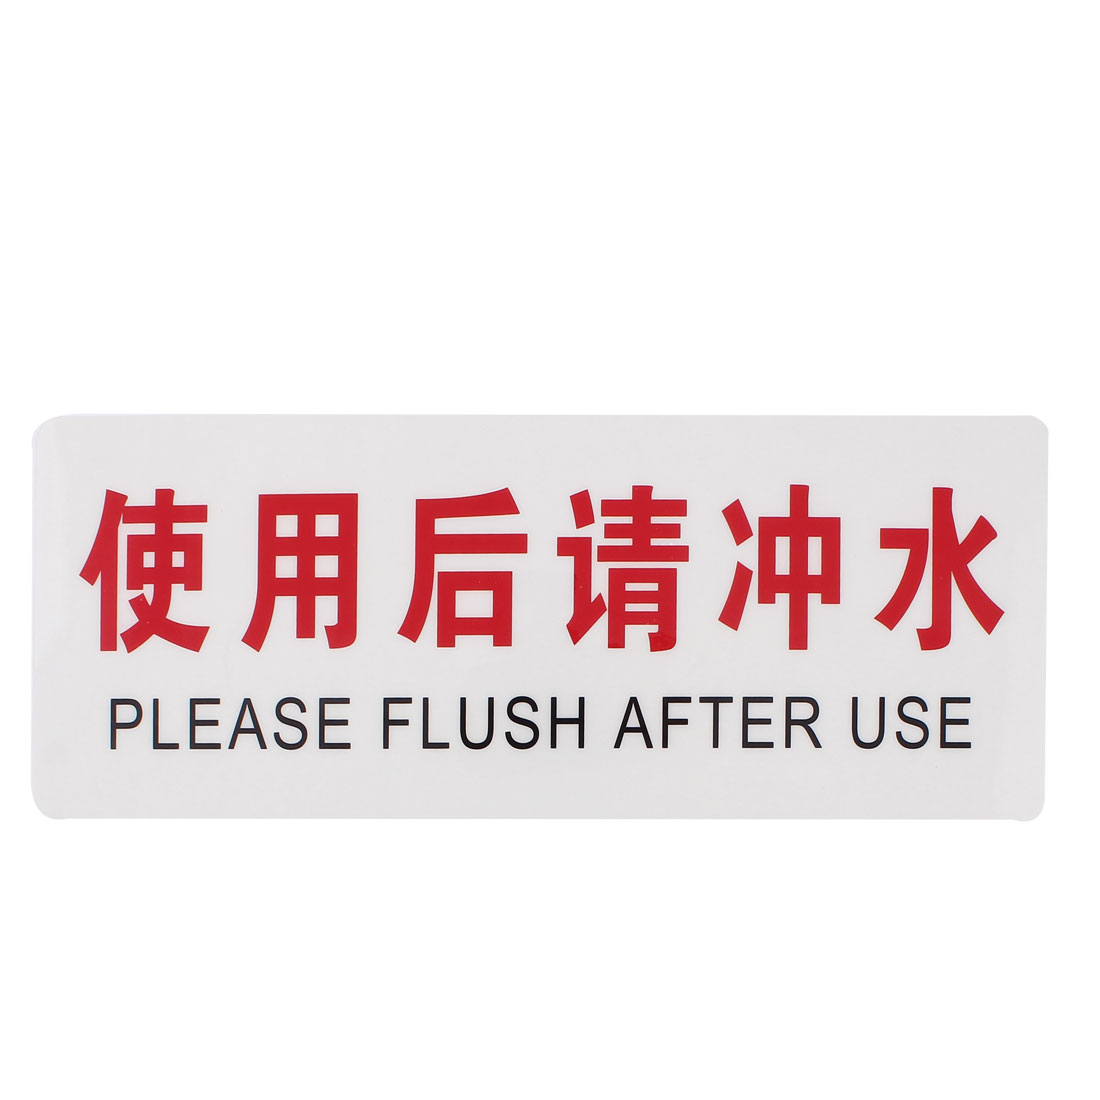 Restroom Toilet Rectangle Please Flush After Use Warning Caution Notice Rules Cleaning Sign Sticker Decal